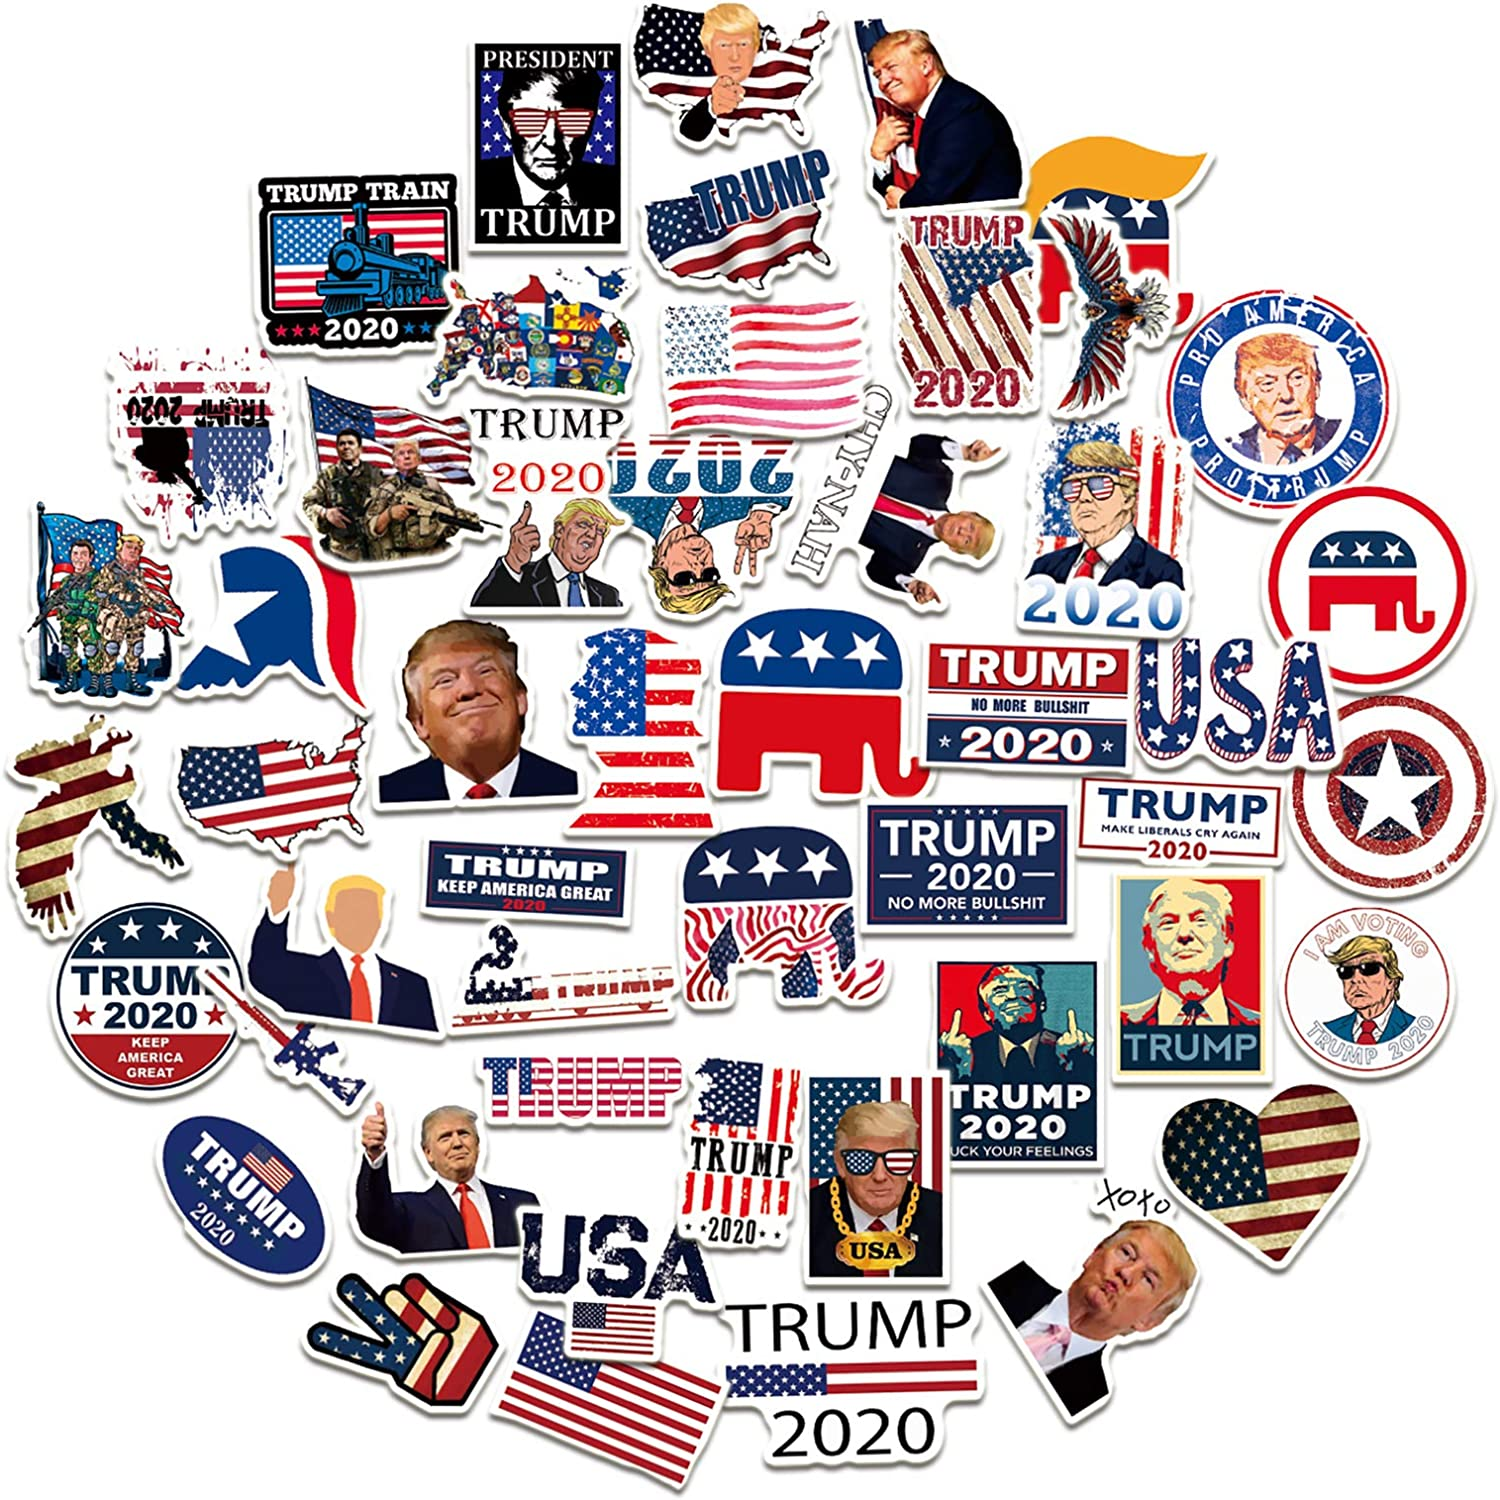 50Pcs Trump Stickers and Decals 2020, American Election Trump Stickers Waterproof Vinyl Stickers Decals for Laptop Water Bottle Bumper Luggage Computer Skateboard Snowboard